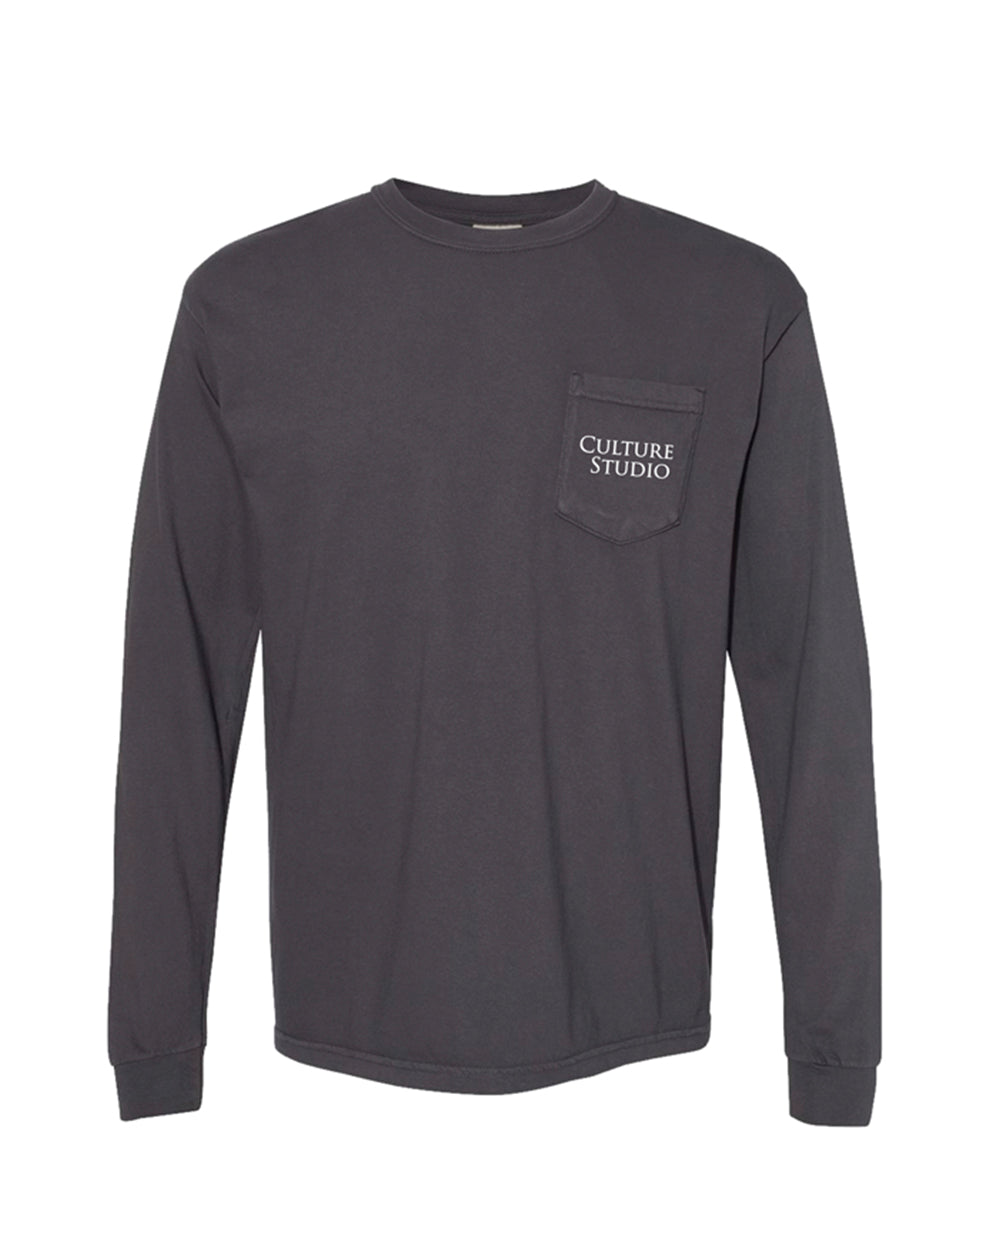 graphite-long-sleeve-pocket-tee_image